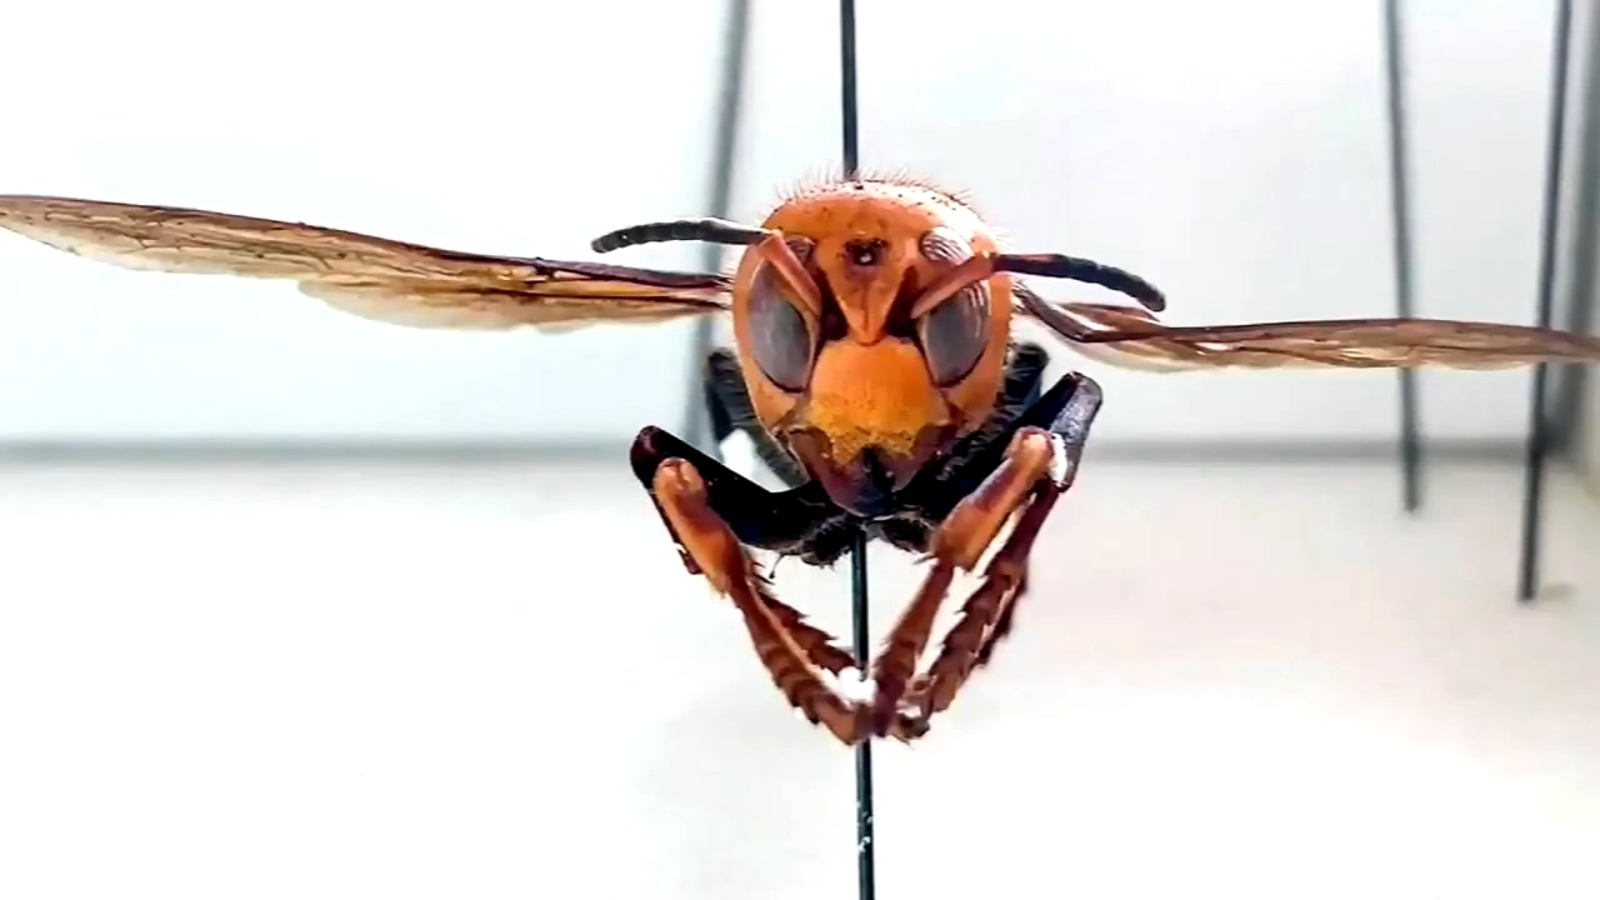 Officials confirm 3 new sightings of Asian giant 'murder hornets' in Washington state